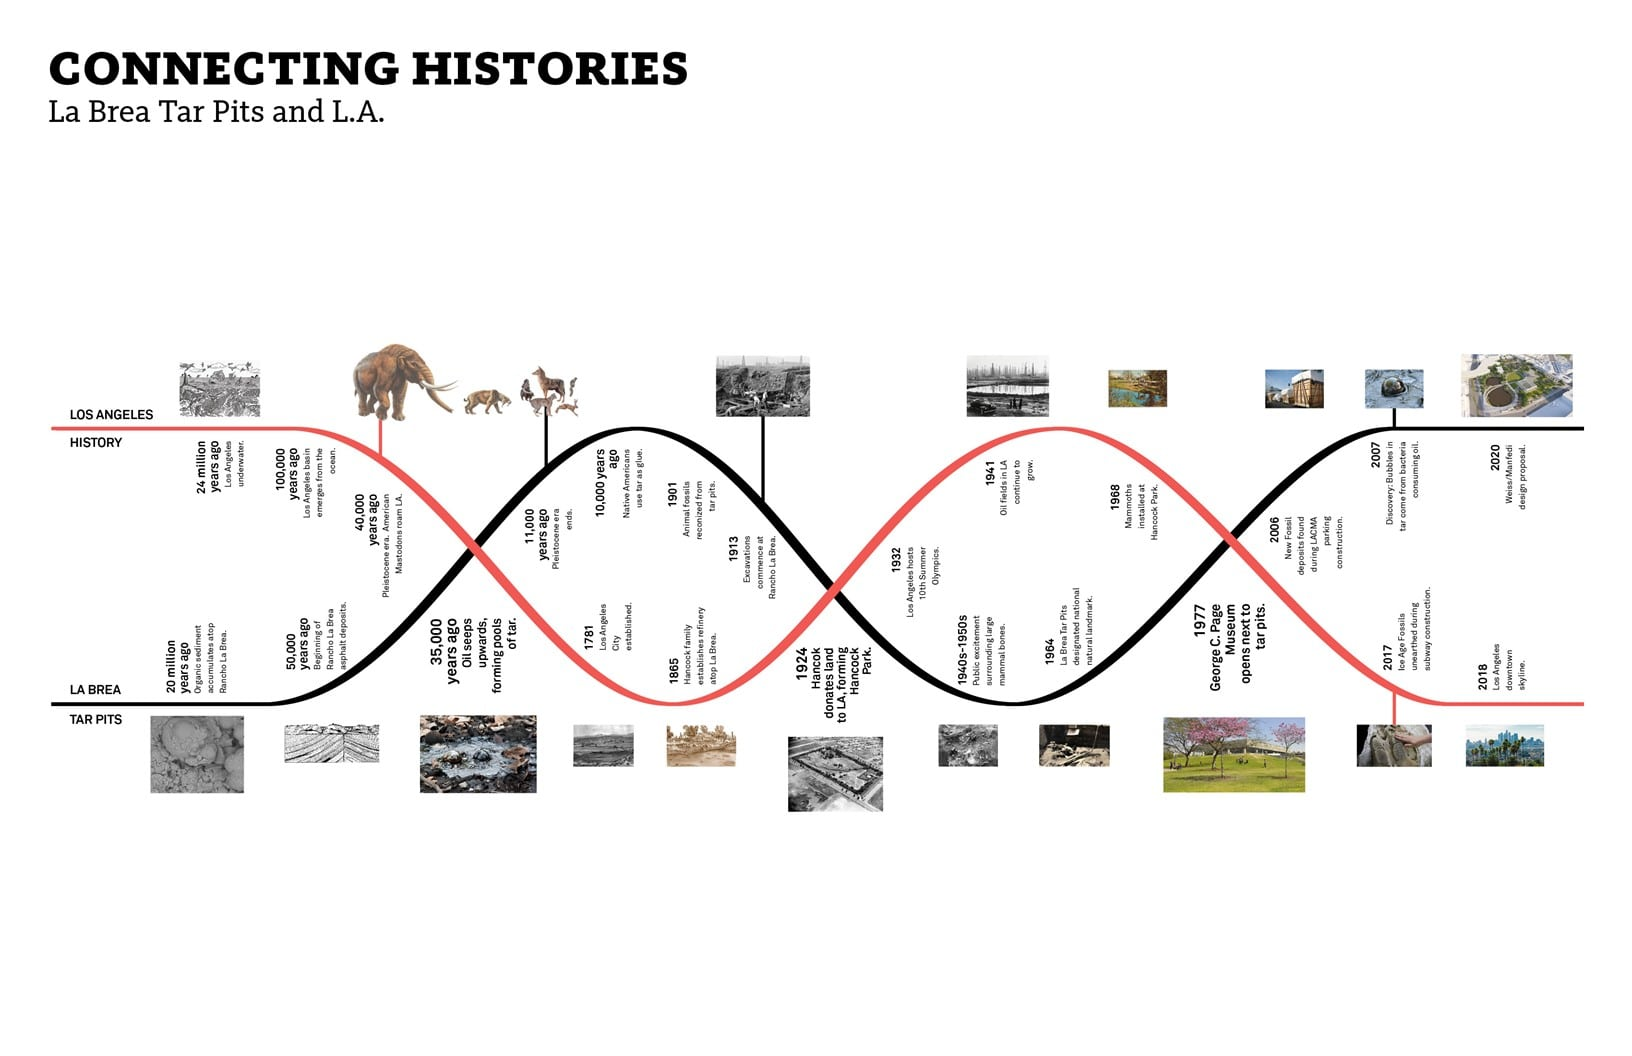 Connecting histories WEISS/MANFREDI}